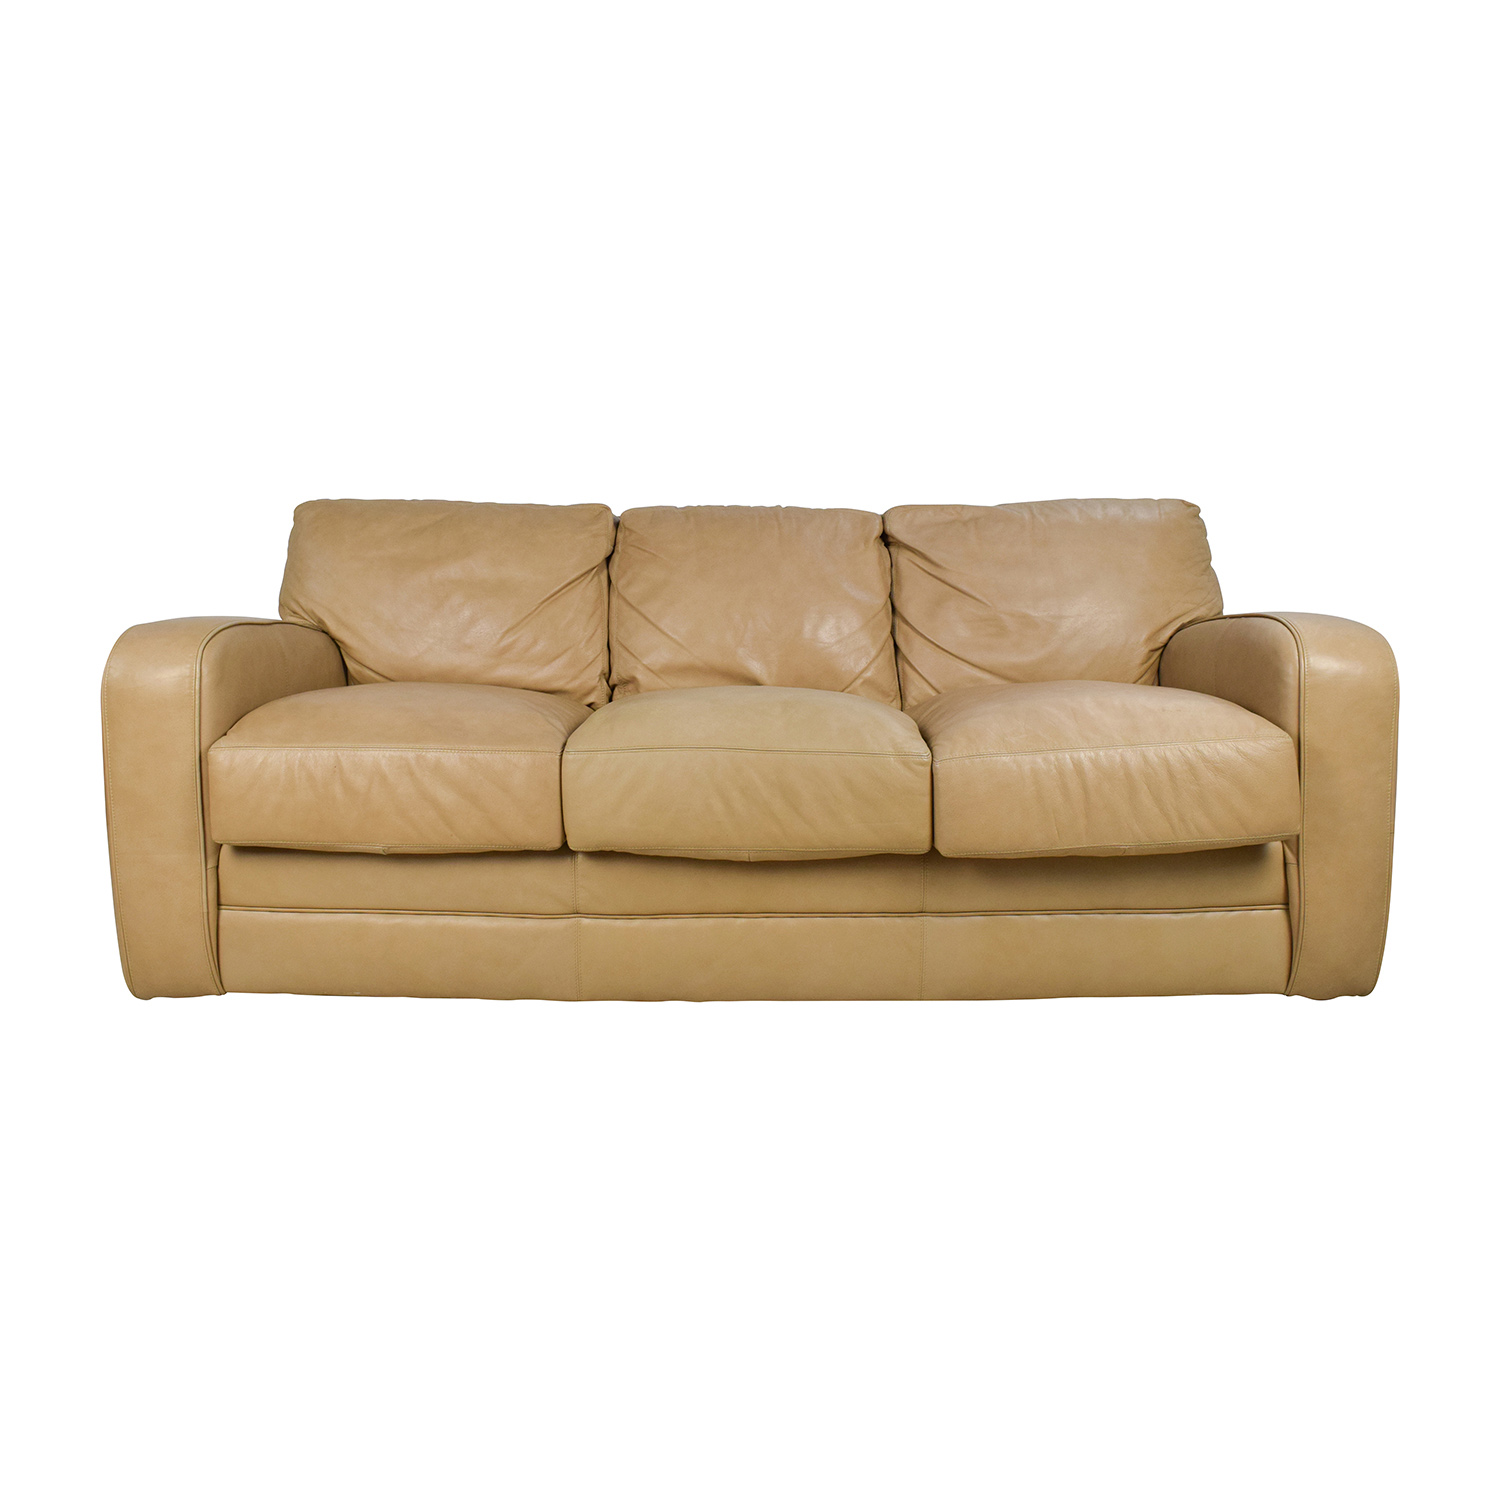 Beige Three Seat Leather Sofa second hand